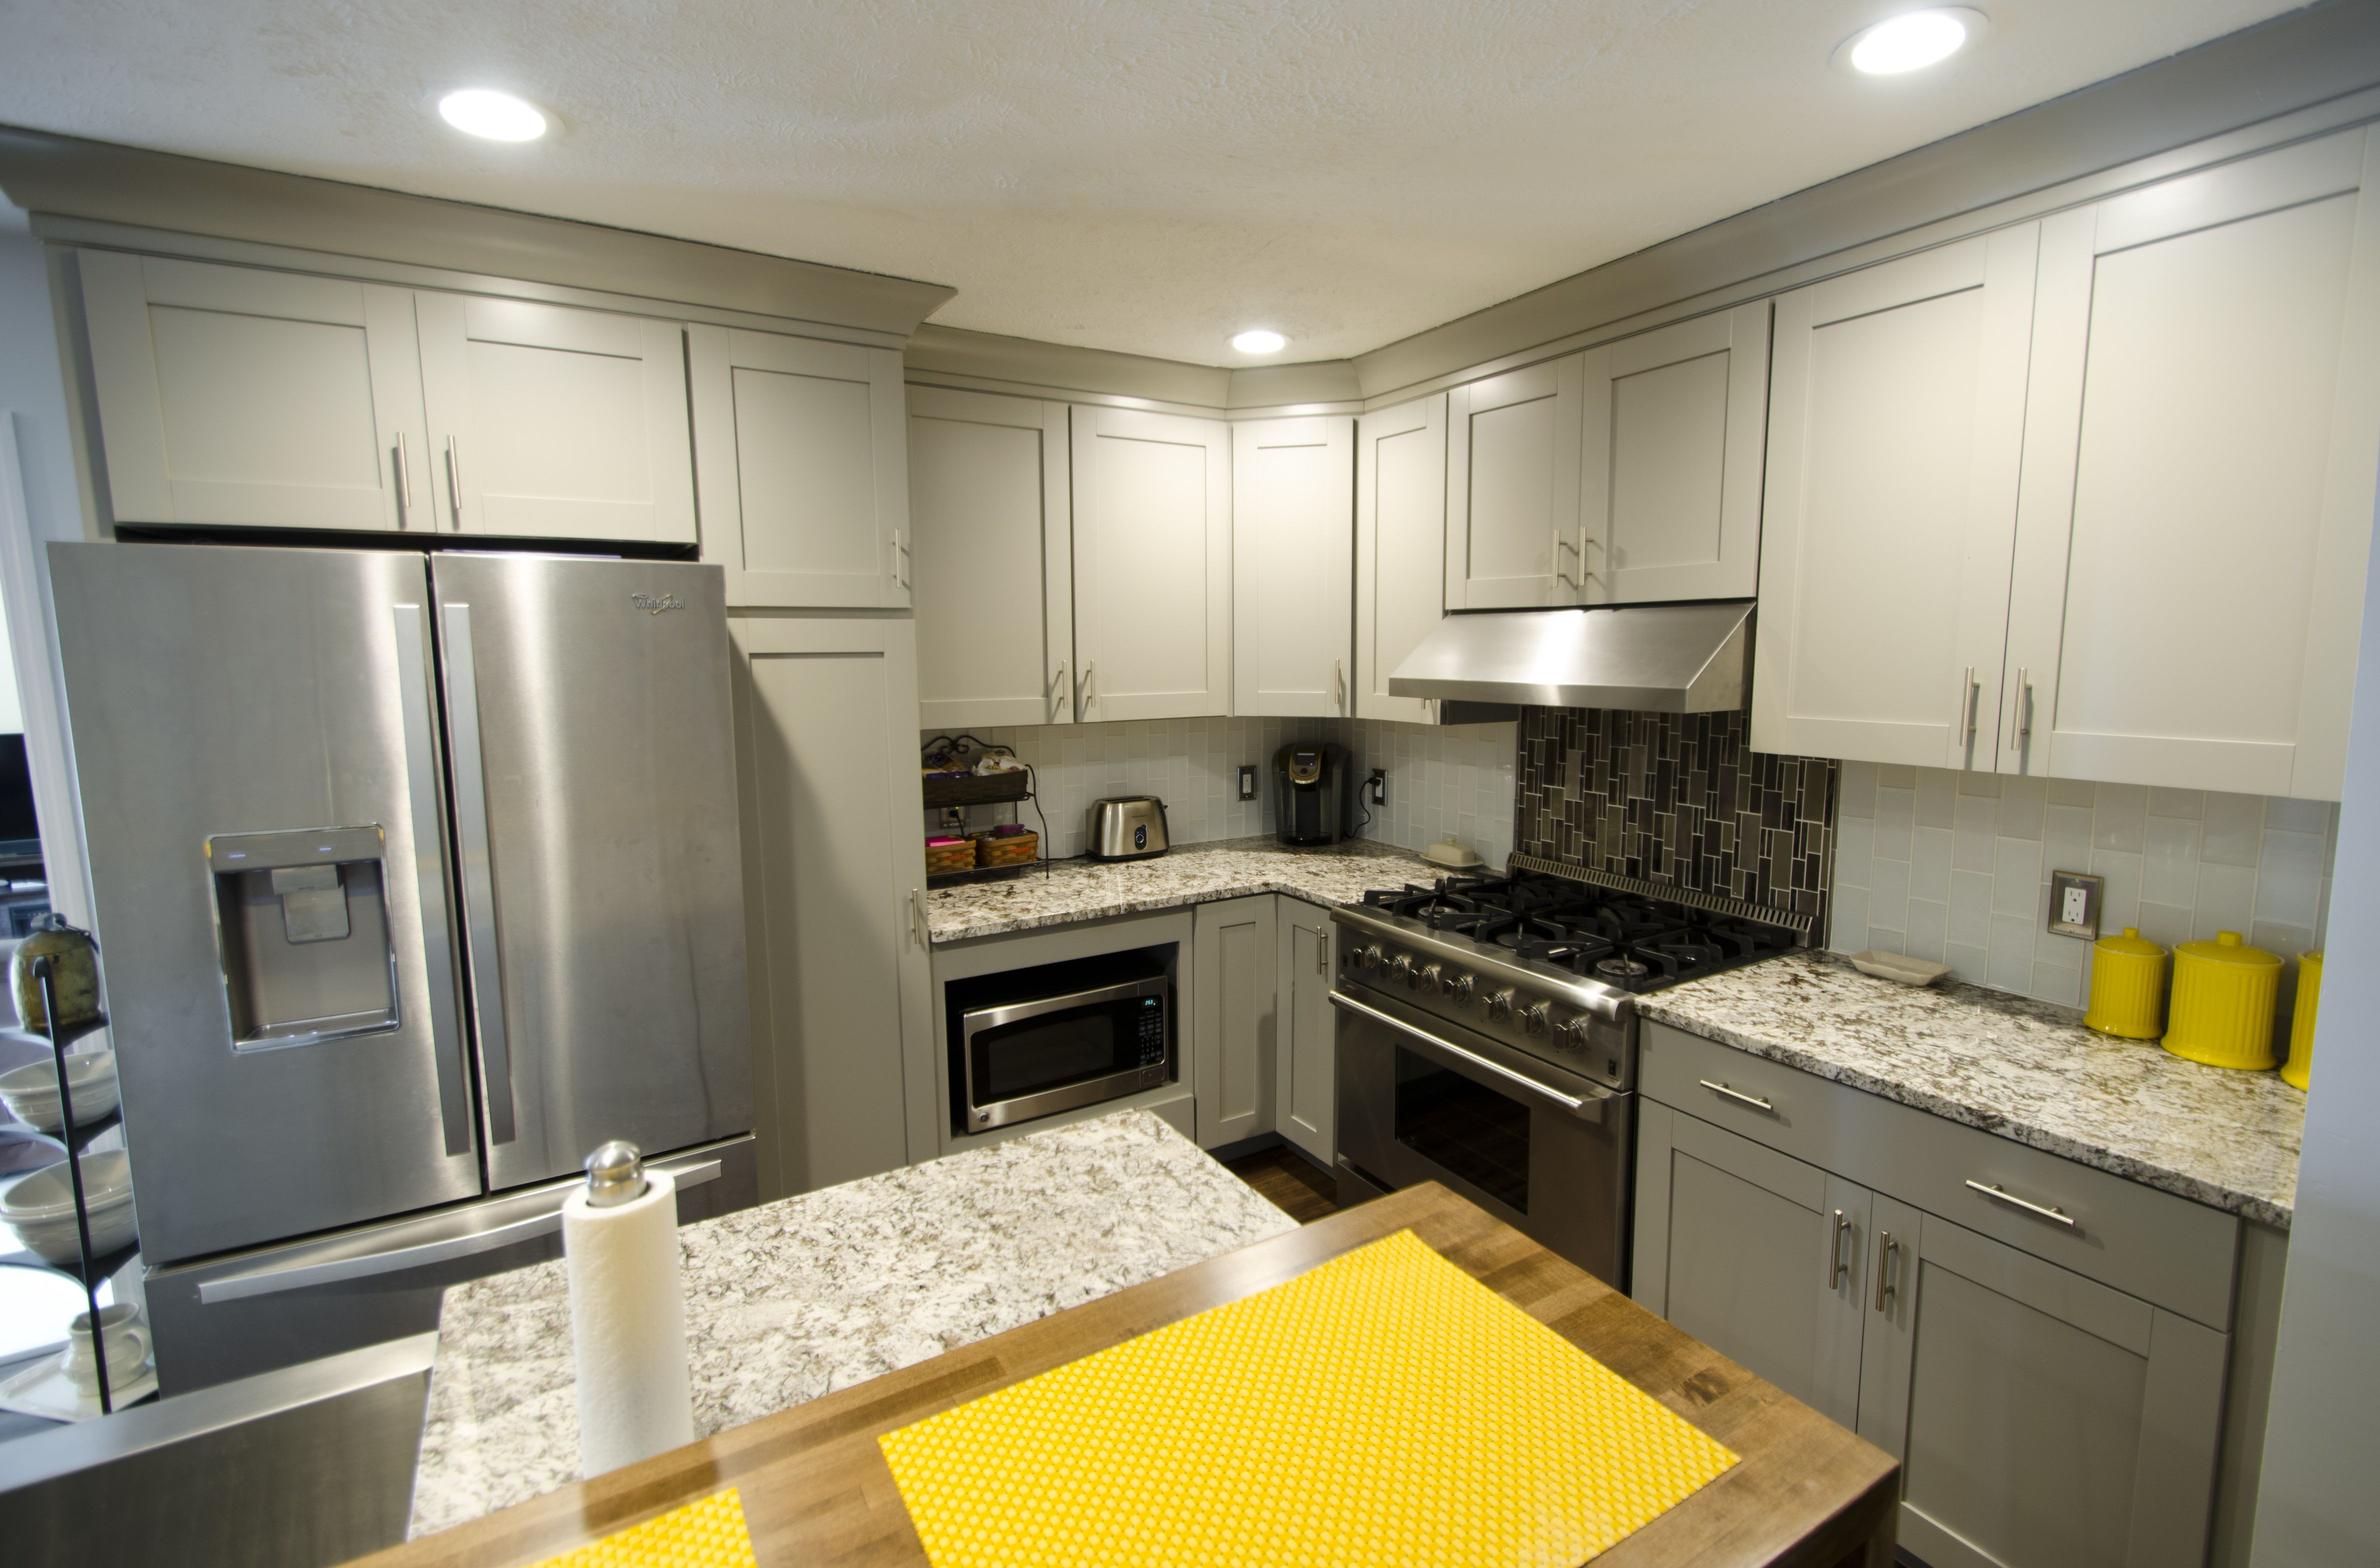 This Fresh Diamond Kitchen Remodel Was Completed By Lowe S Designer Marcus Lehman This Clean Transit Kitchen Remodel Kitchen Cabinet Remodel Real Kitchen